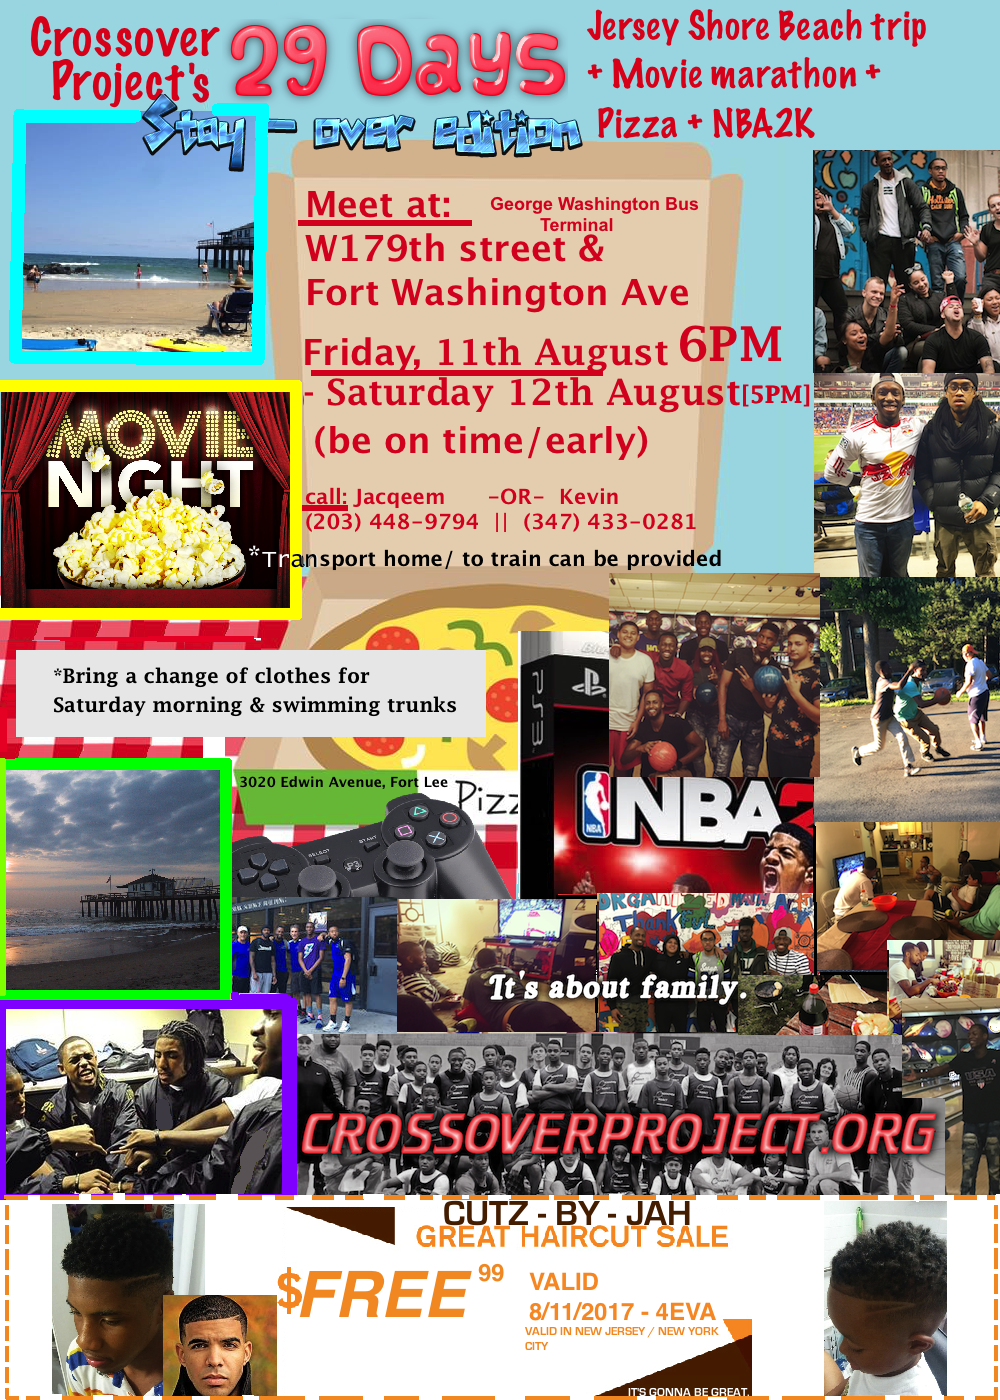 Crossover_project_29days_flier_augsut_11_2017_cutz.png